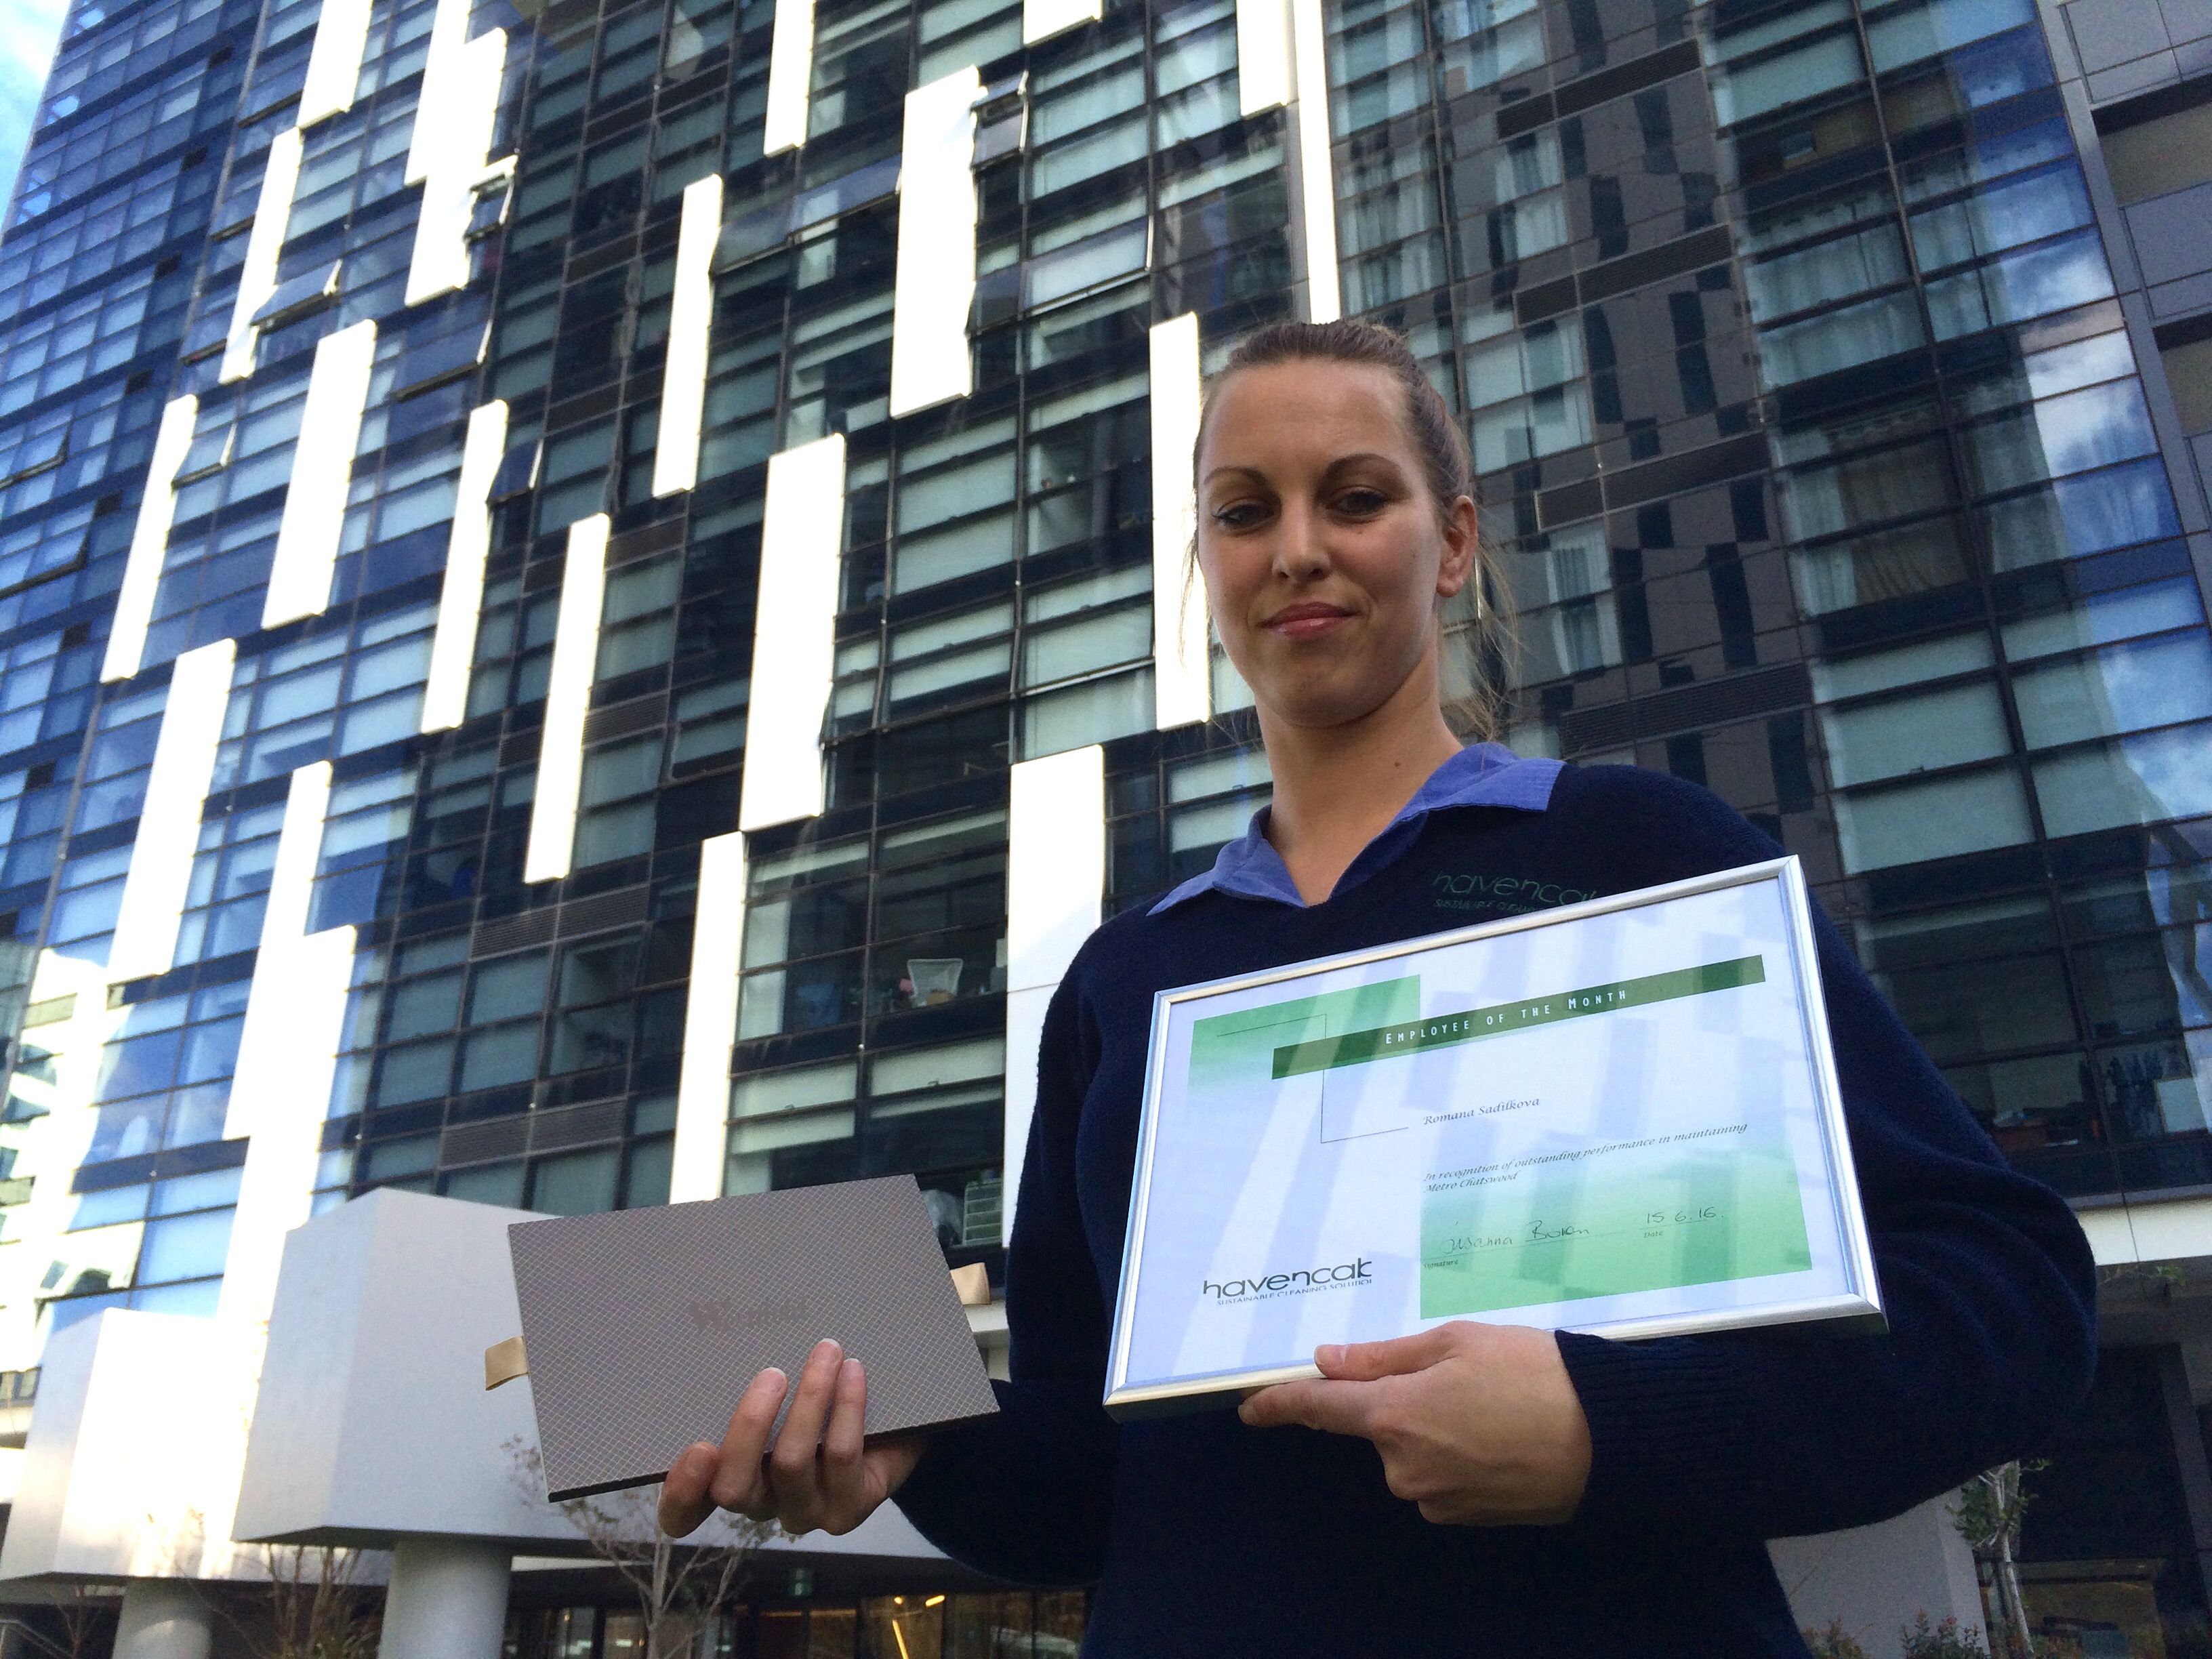 Havencab Employee of the Month Romana Sidilkova